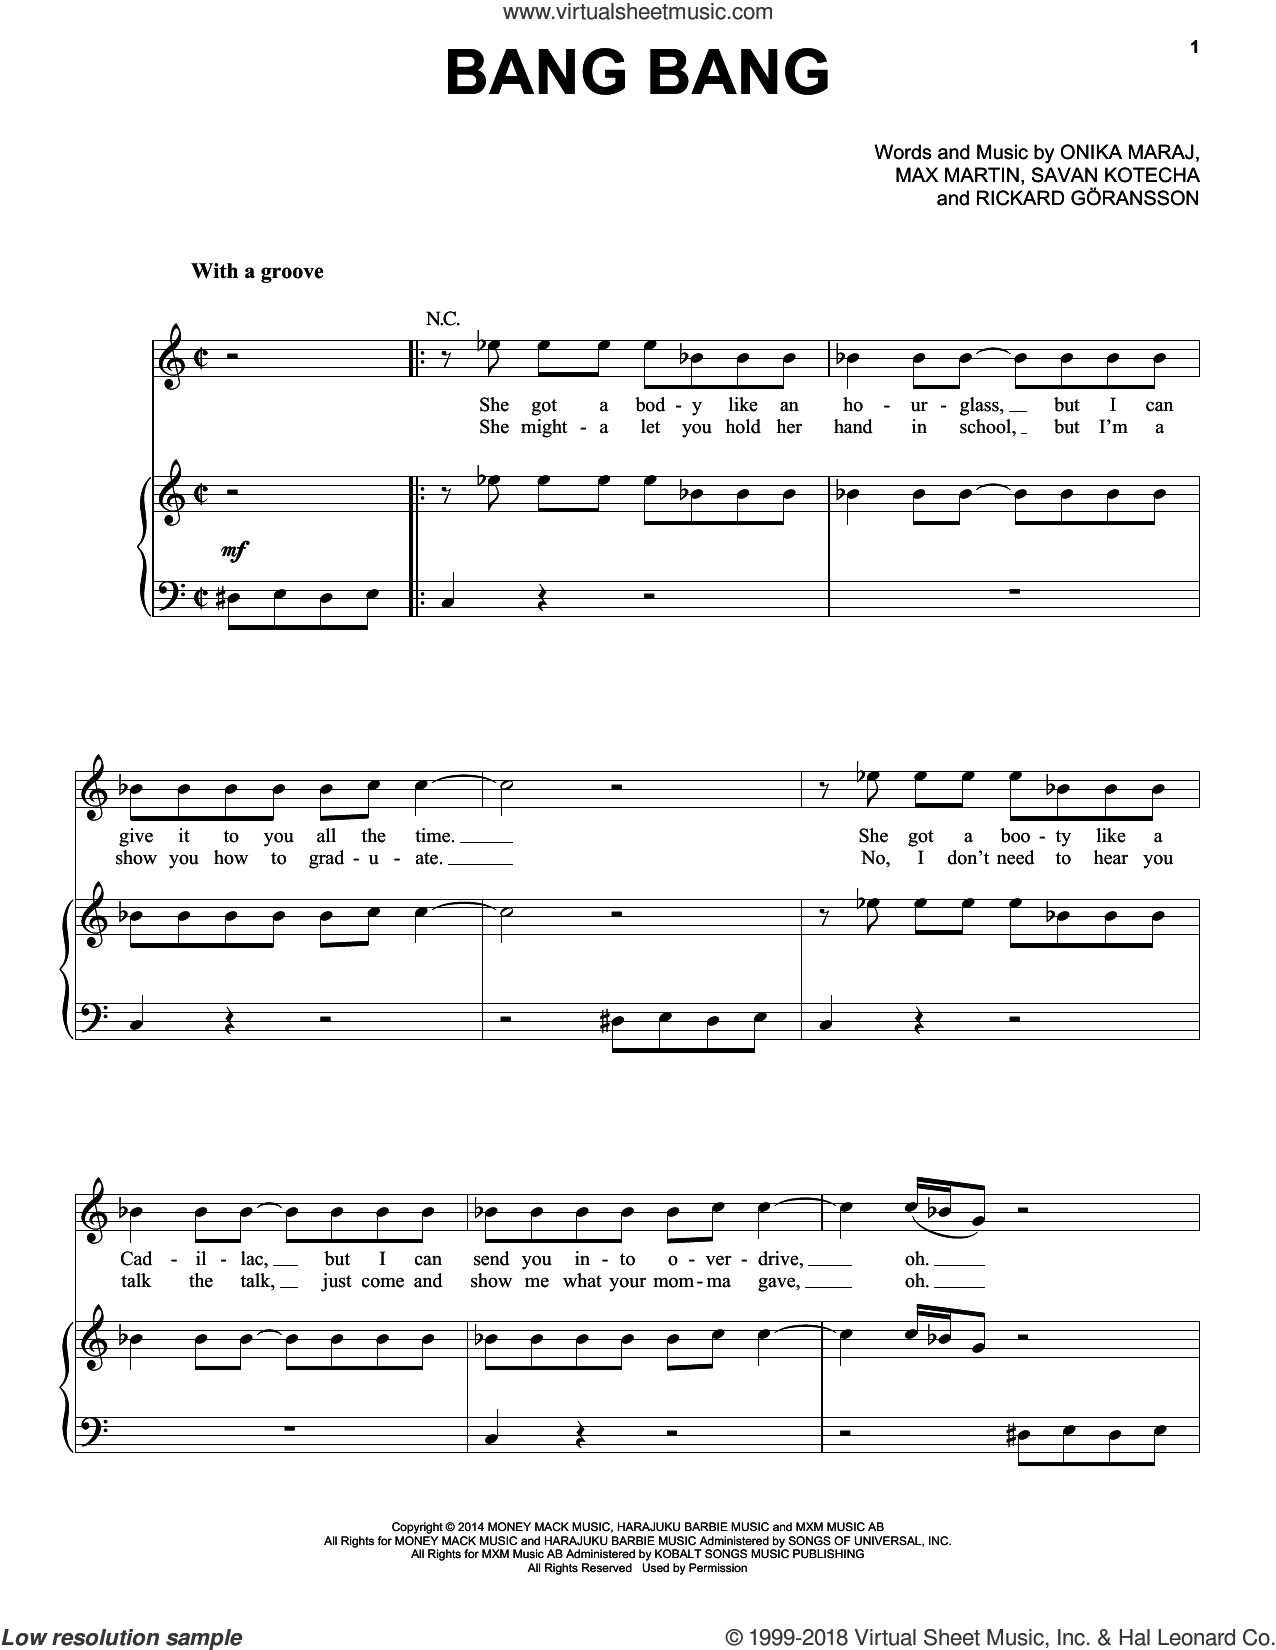 Bang Bang sheet music for voice, piano or guitar by Jessie J, Ariana Grande & Nicki Minaj, Ariana Grande, Jessie J, Nicki Minaj, Max Martin, Onika Maraj, Rickard Goransson and Savan Kotecha, intermediate